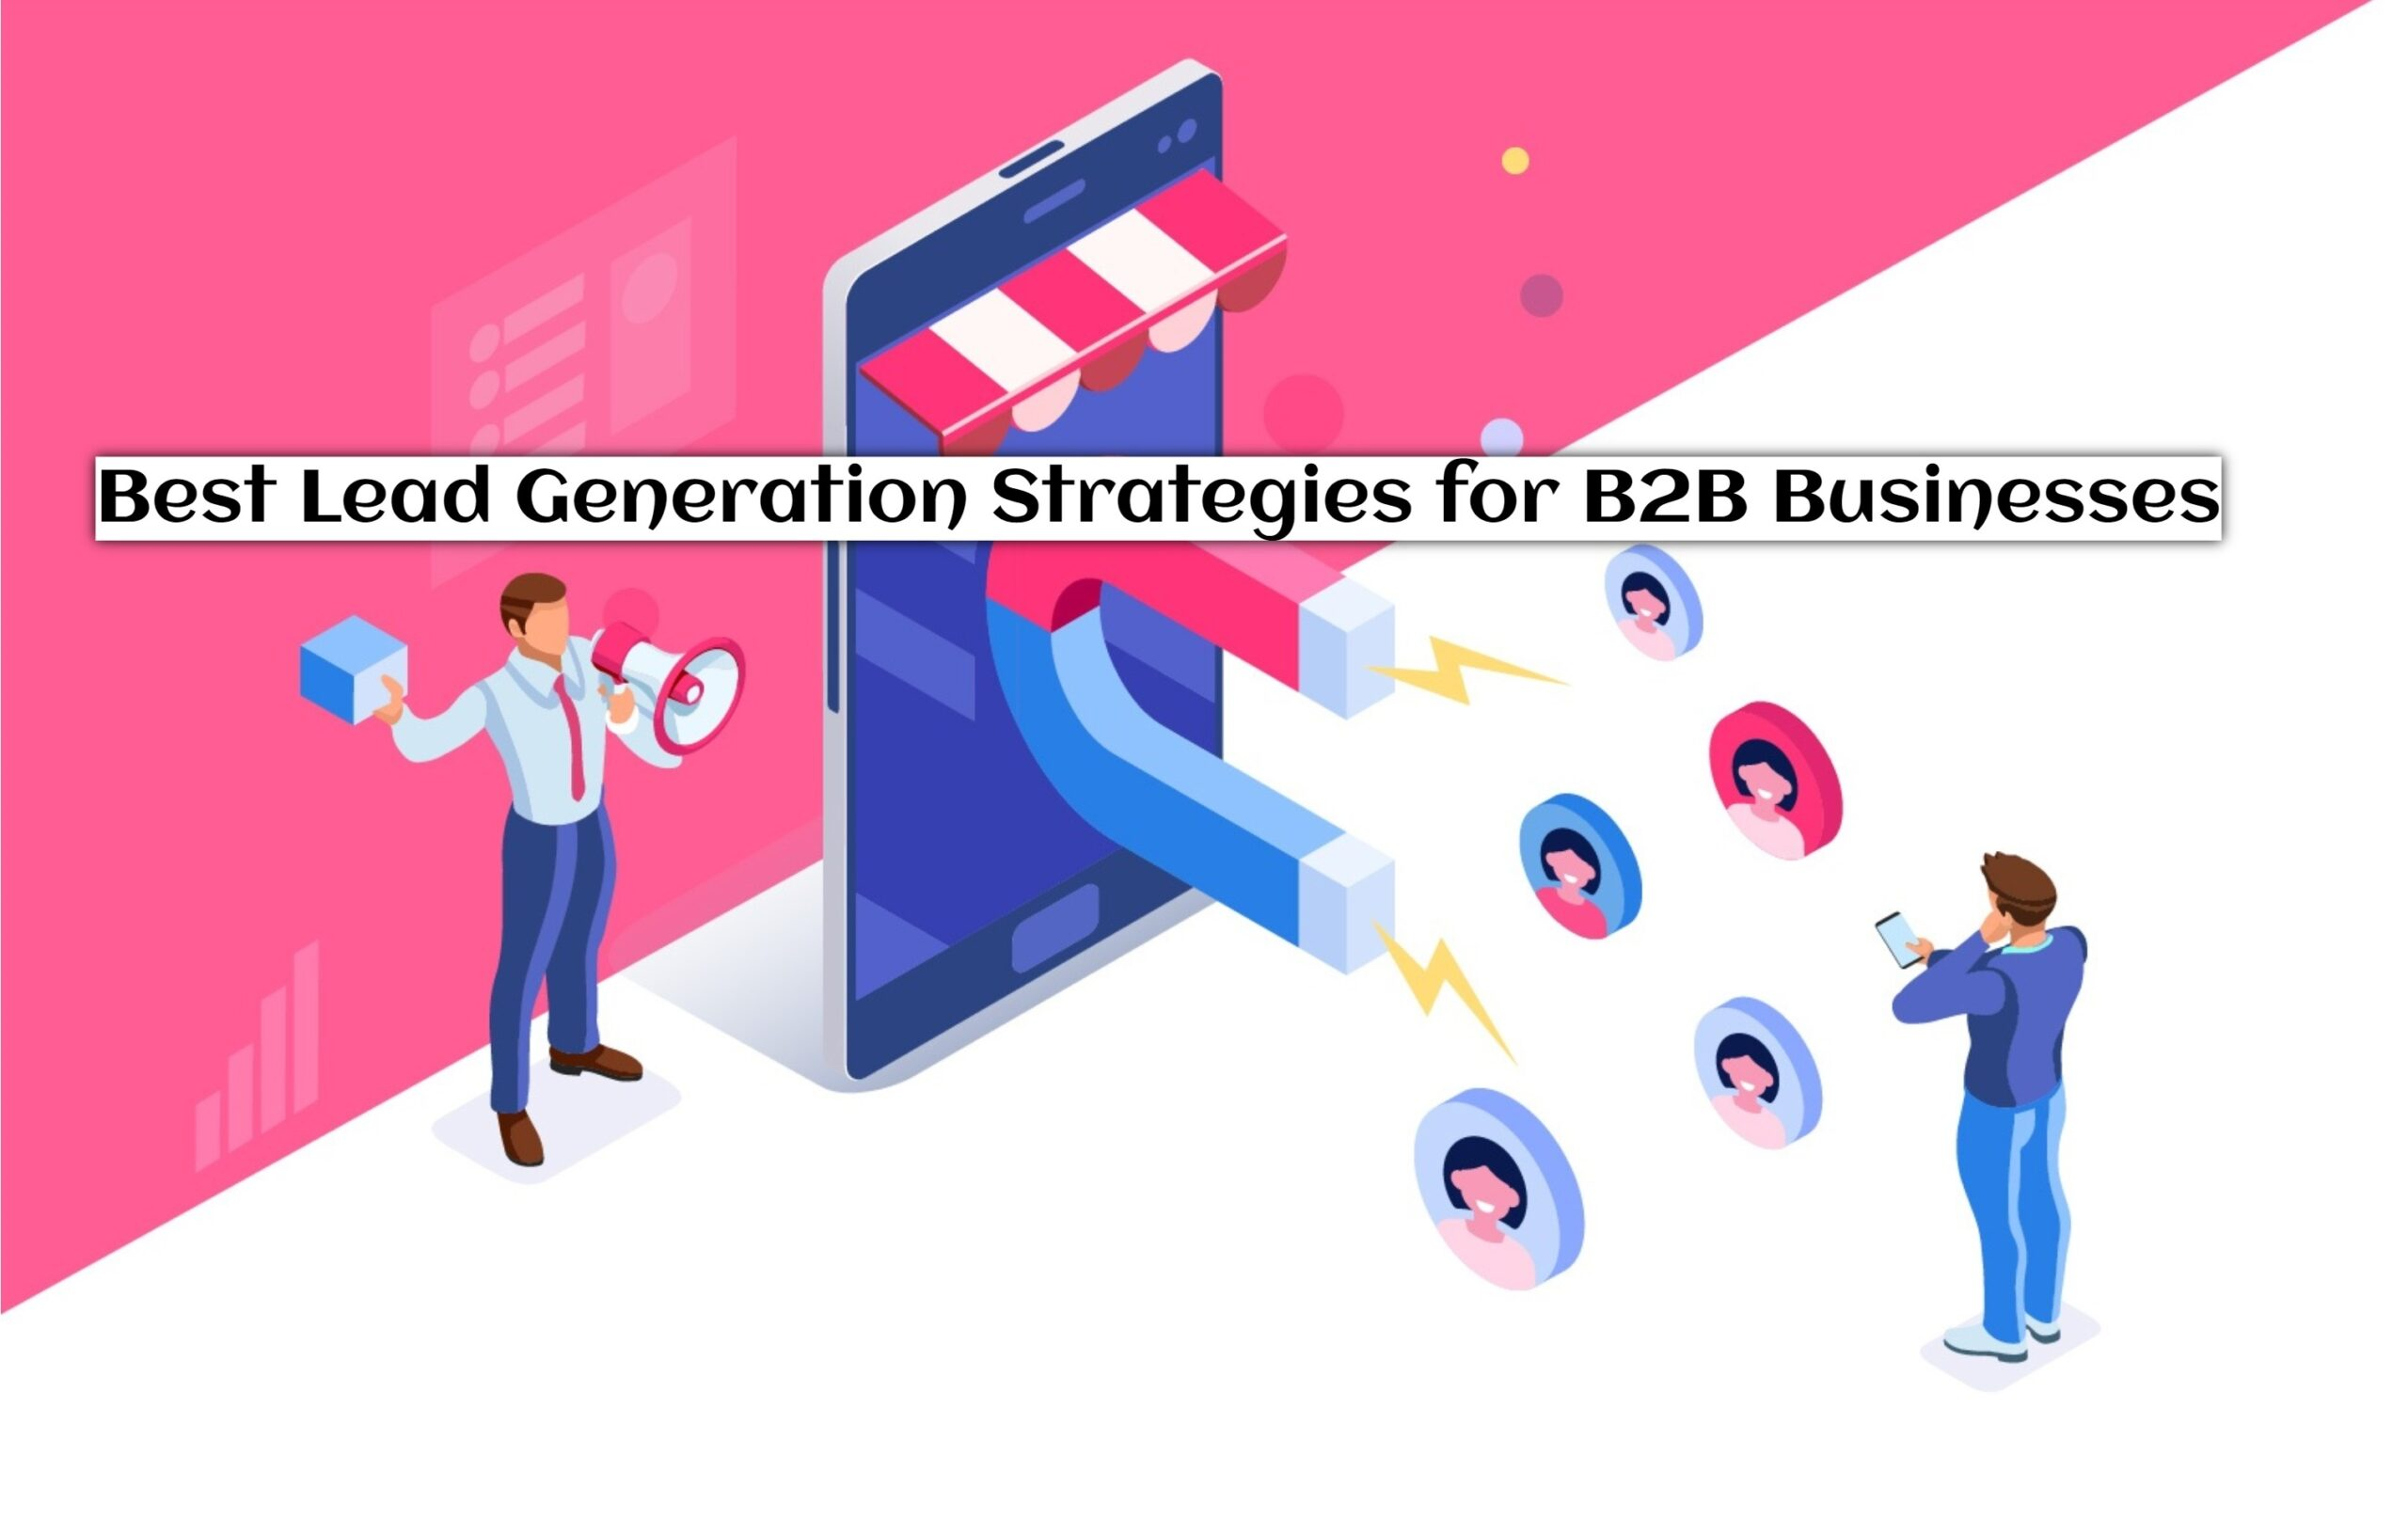 Best Lead Generation Strategies for B2B Businesses